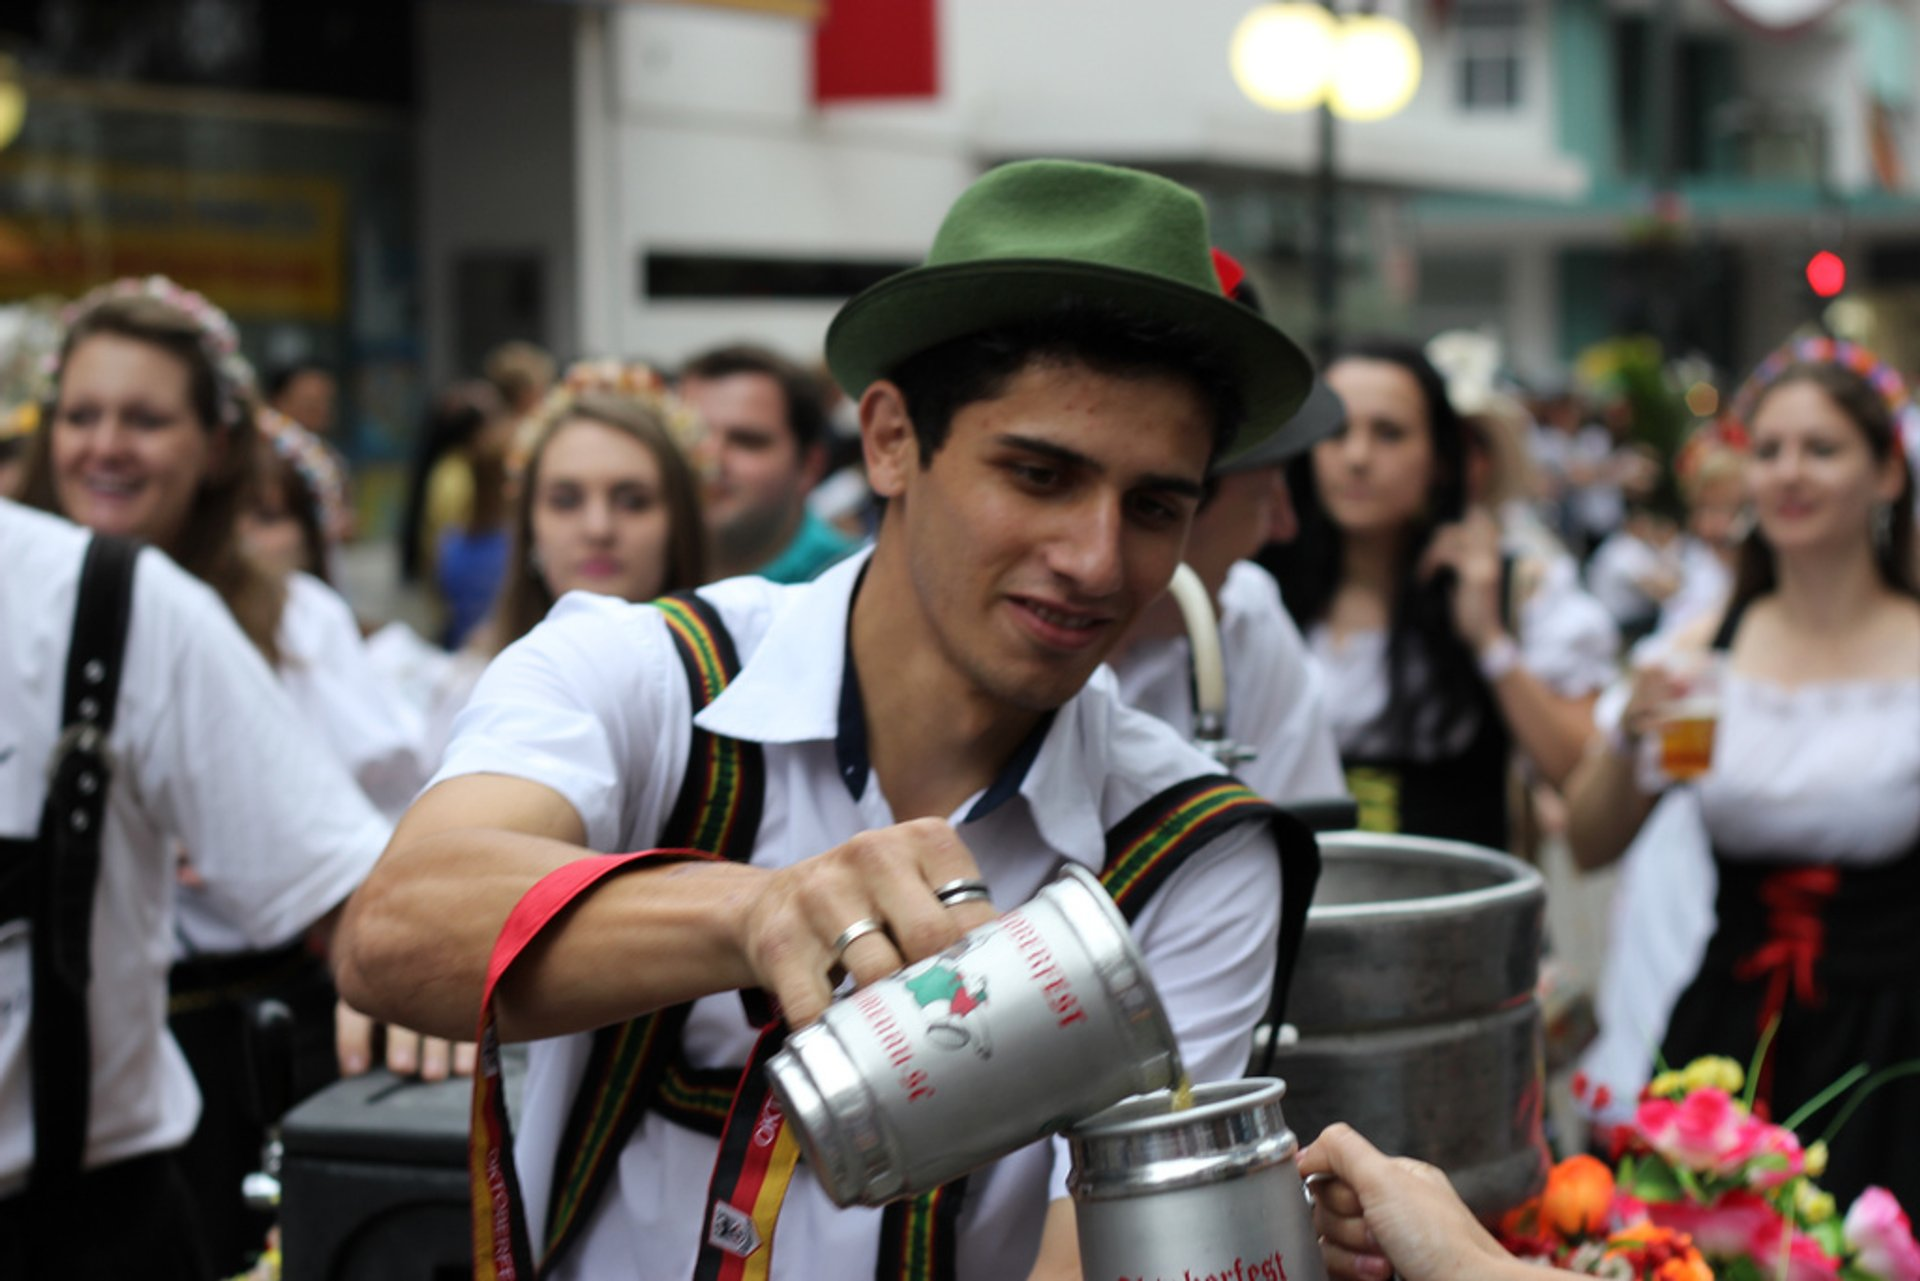 Best time to see Oktoberfest Blumenau 2020